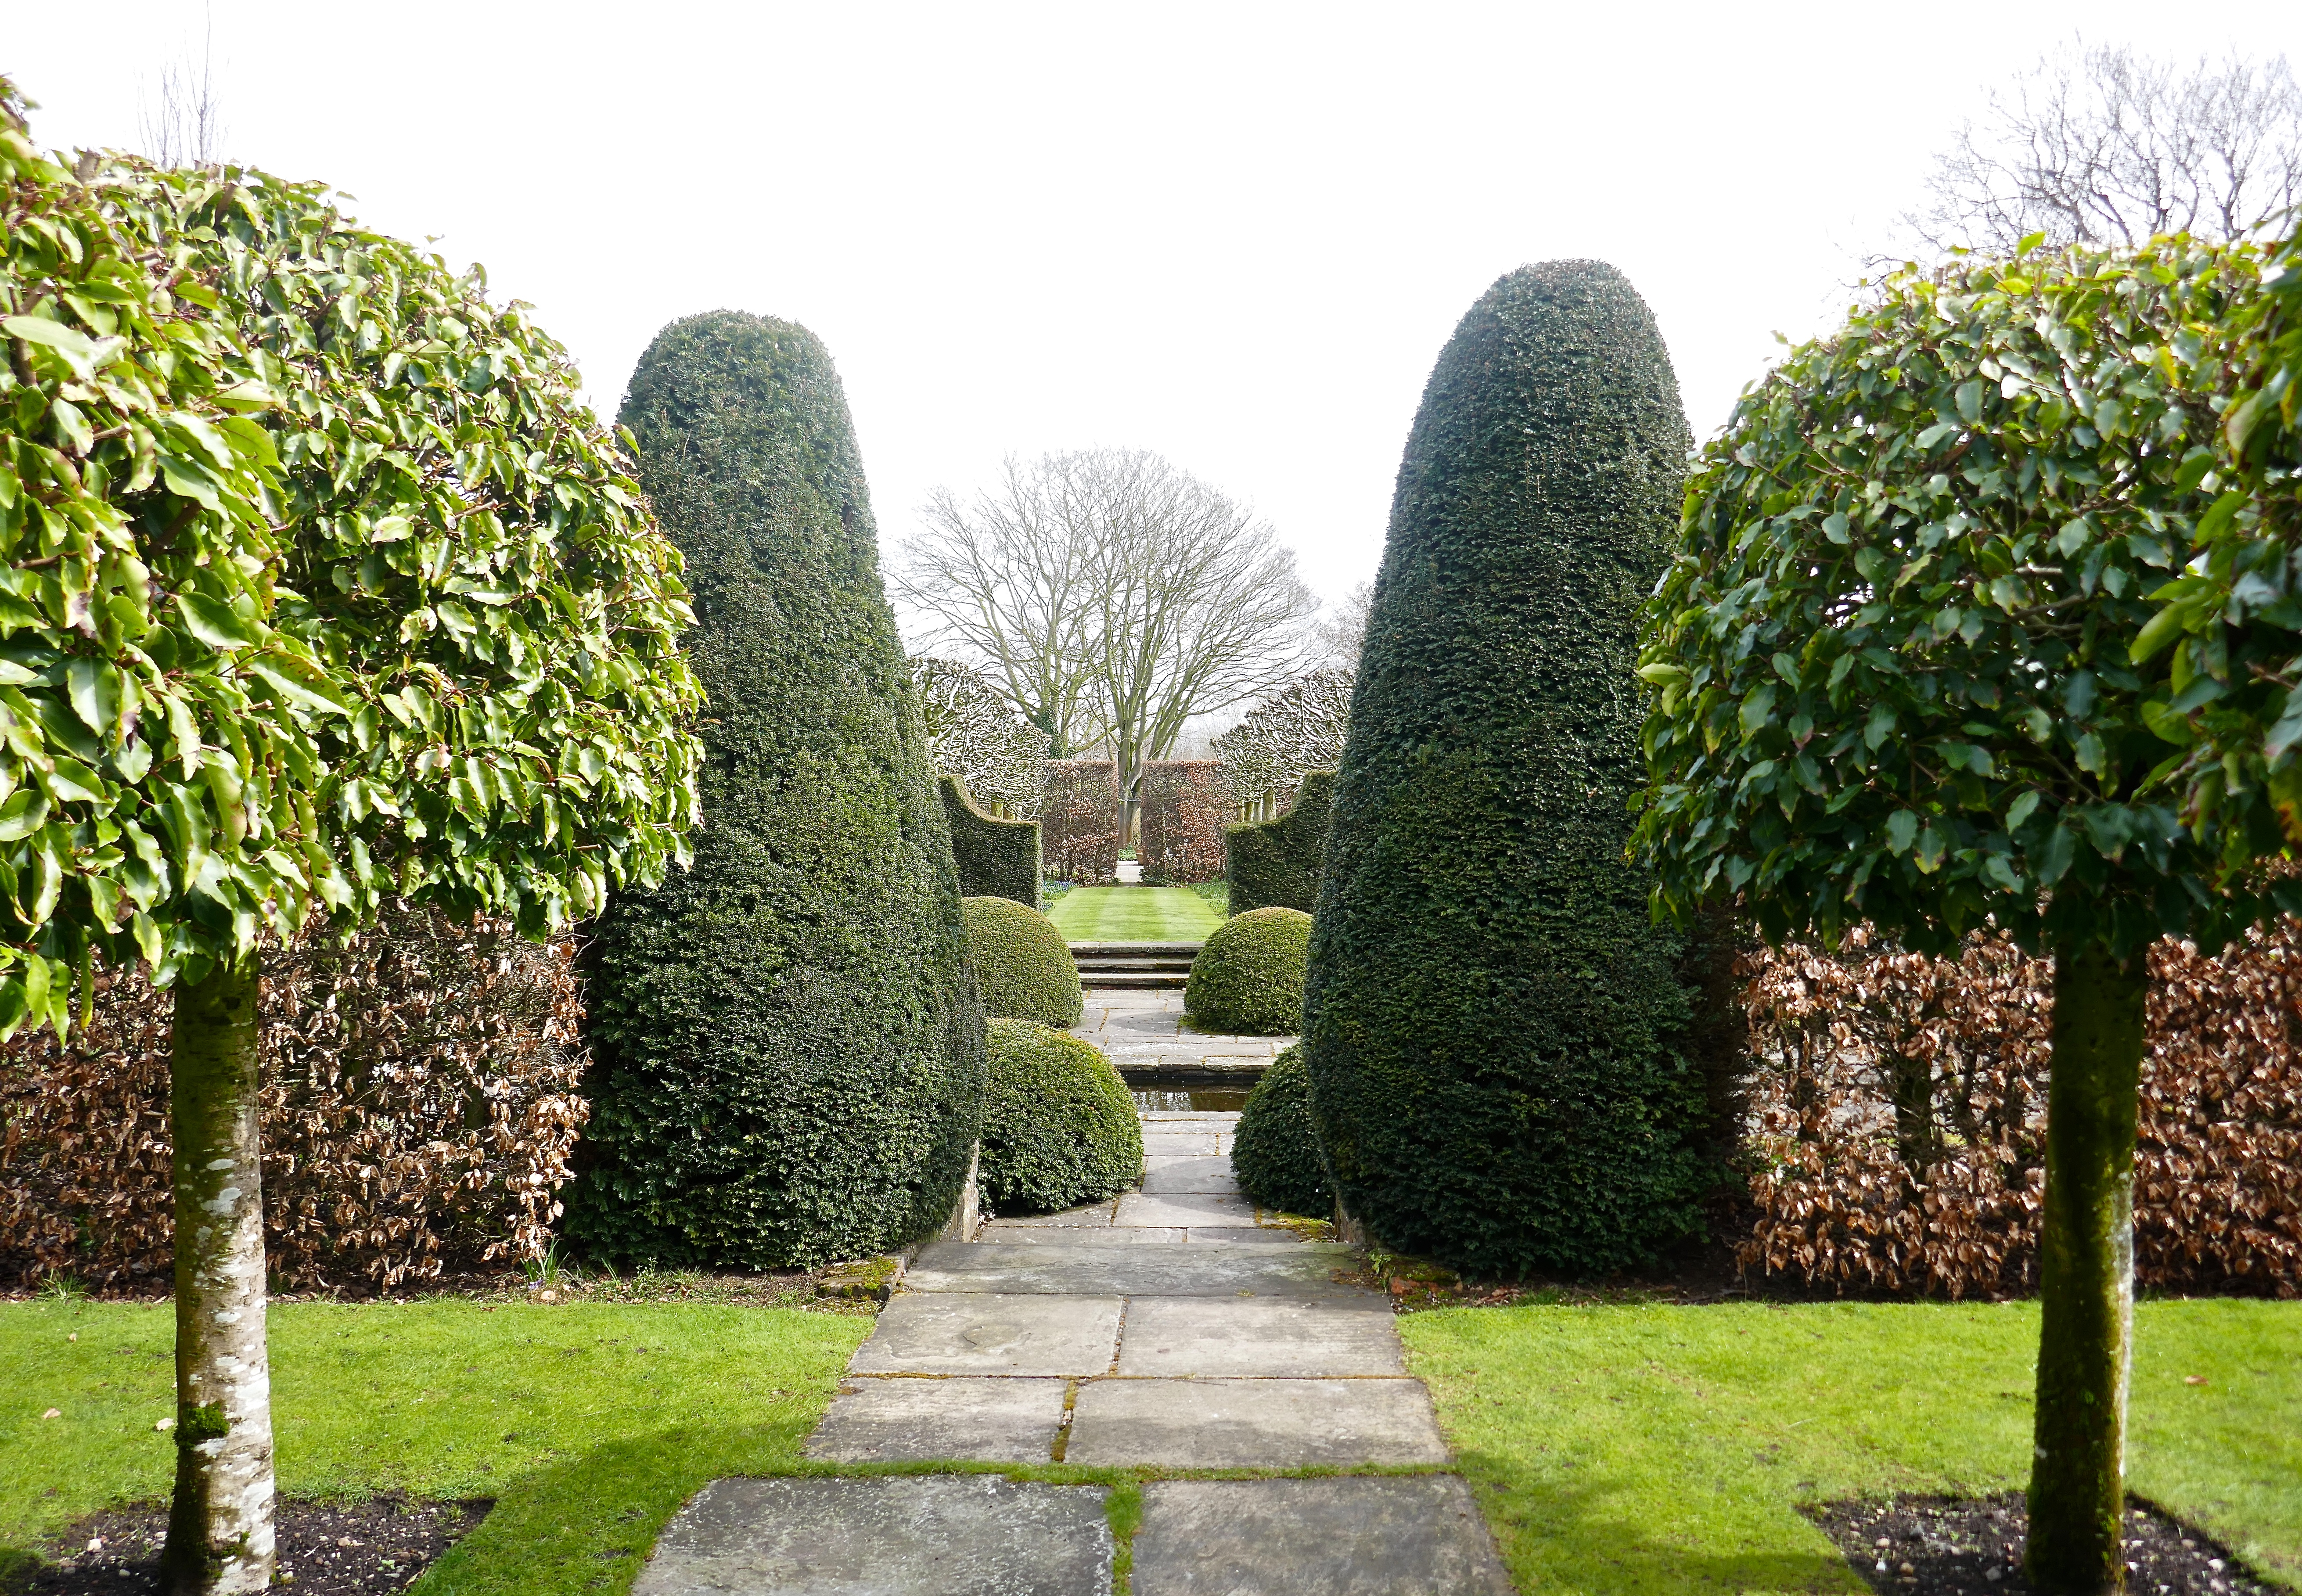 At This Time Of Year You Can Clearly See Just How The Use Of Structure  Brings The Garden Together And Separates ...